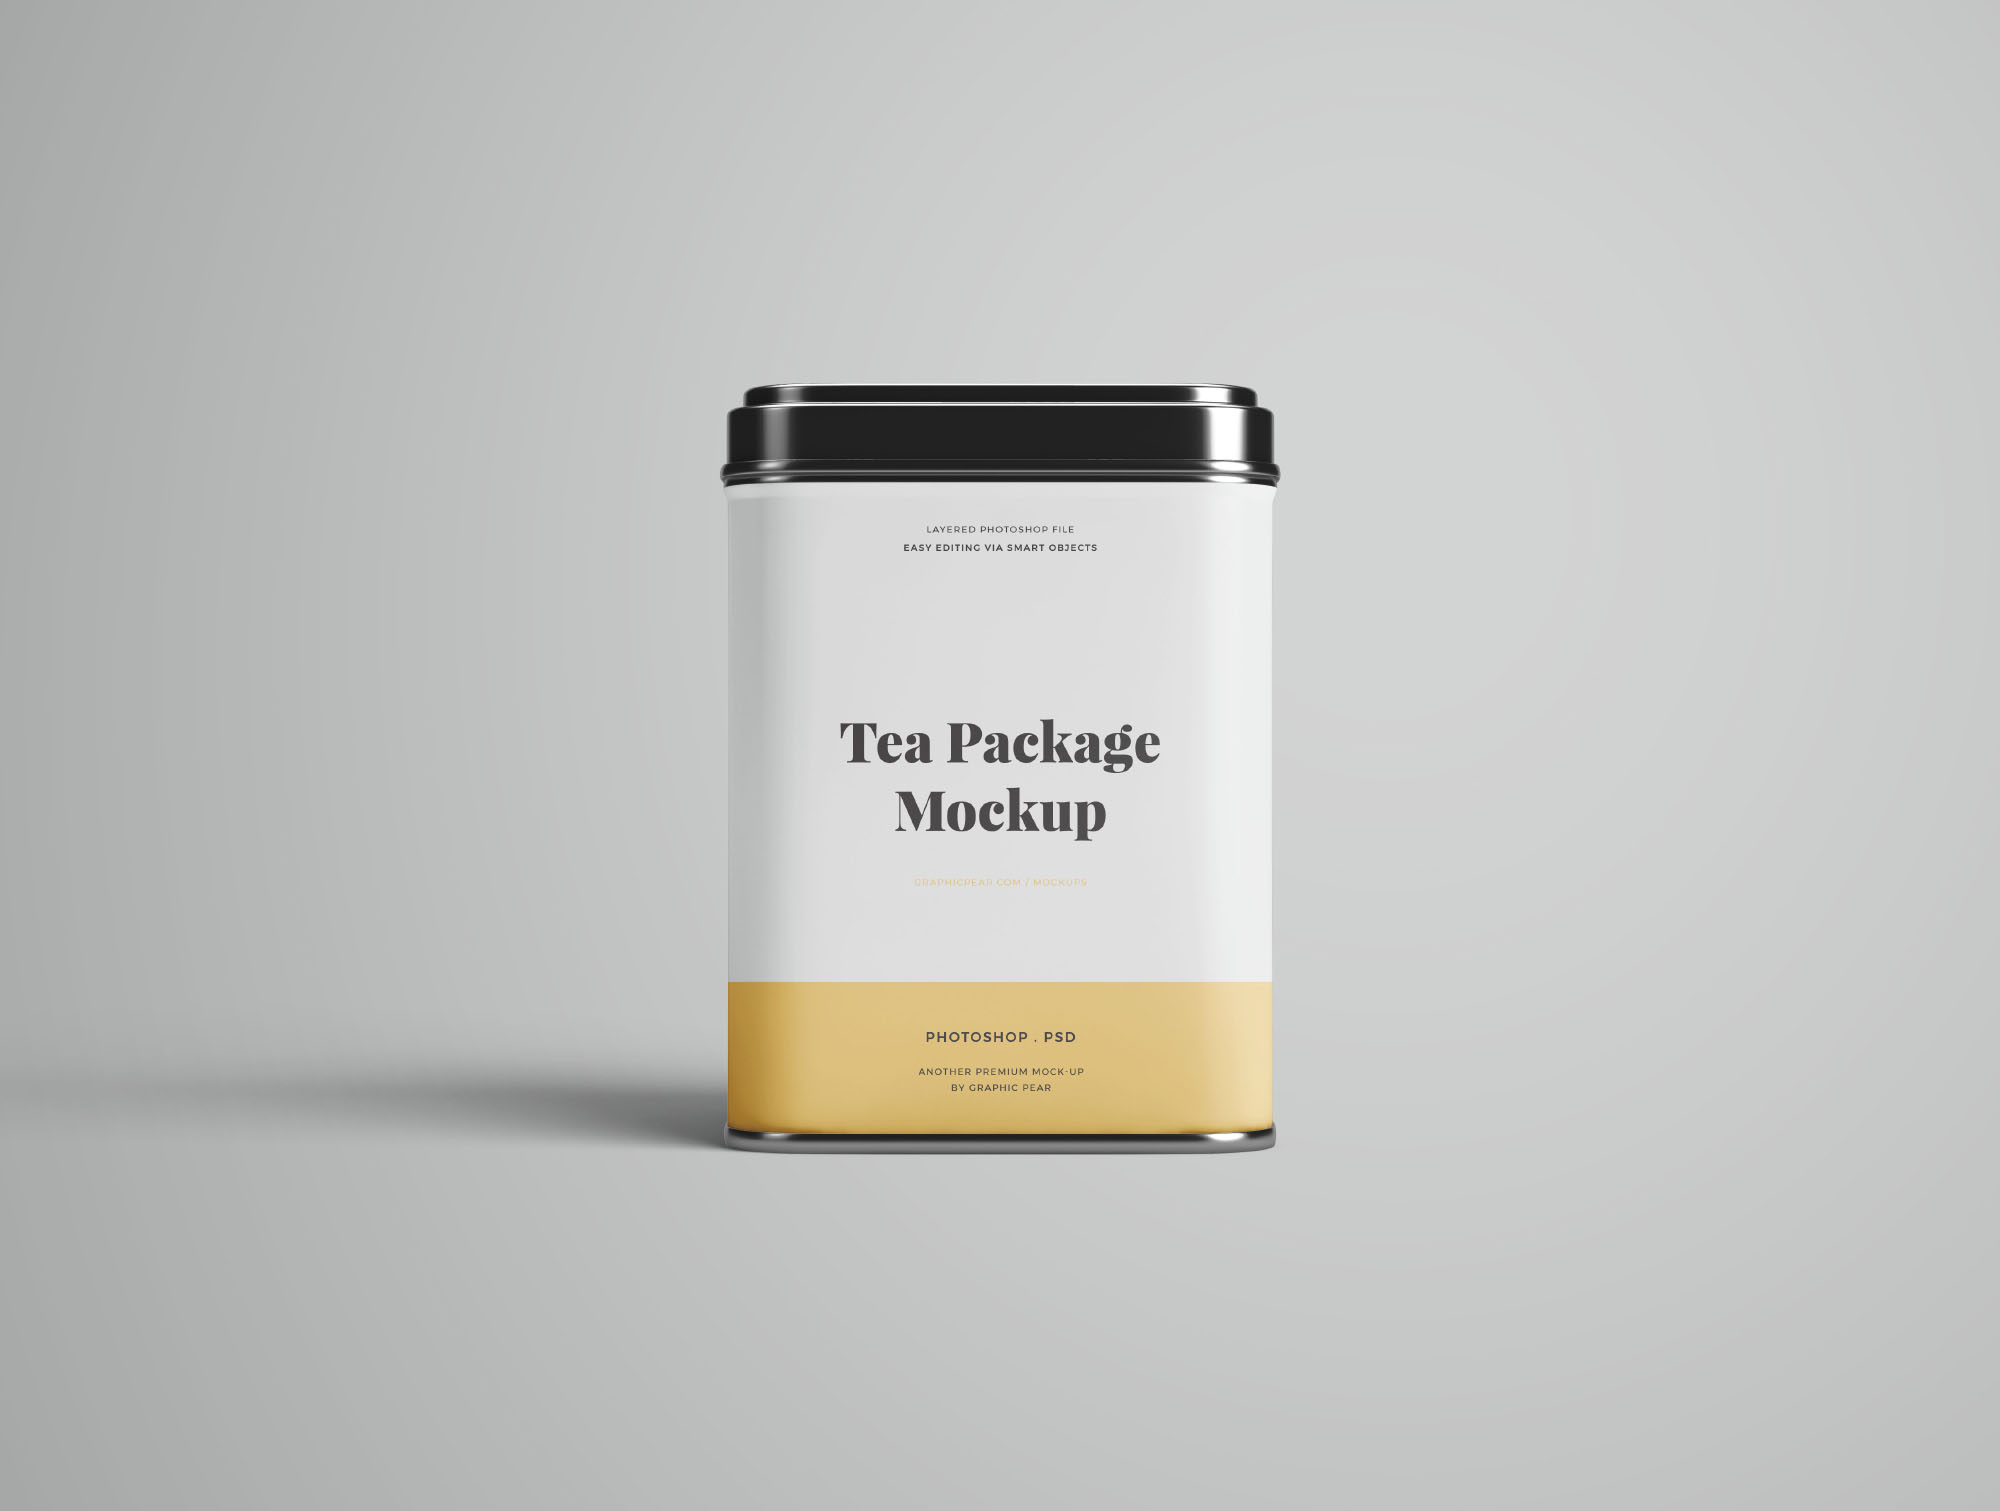 Tea Package Mockup - Front